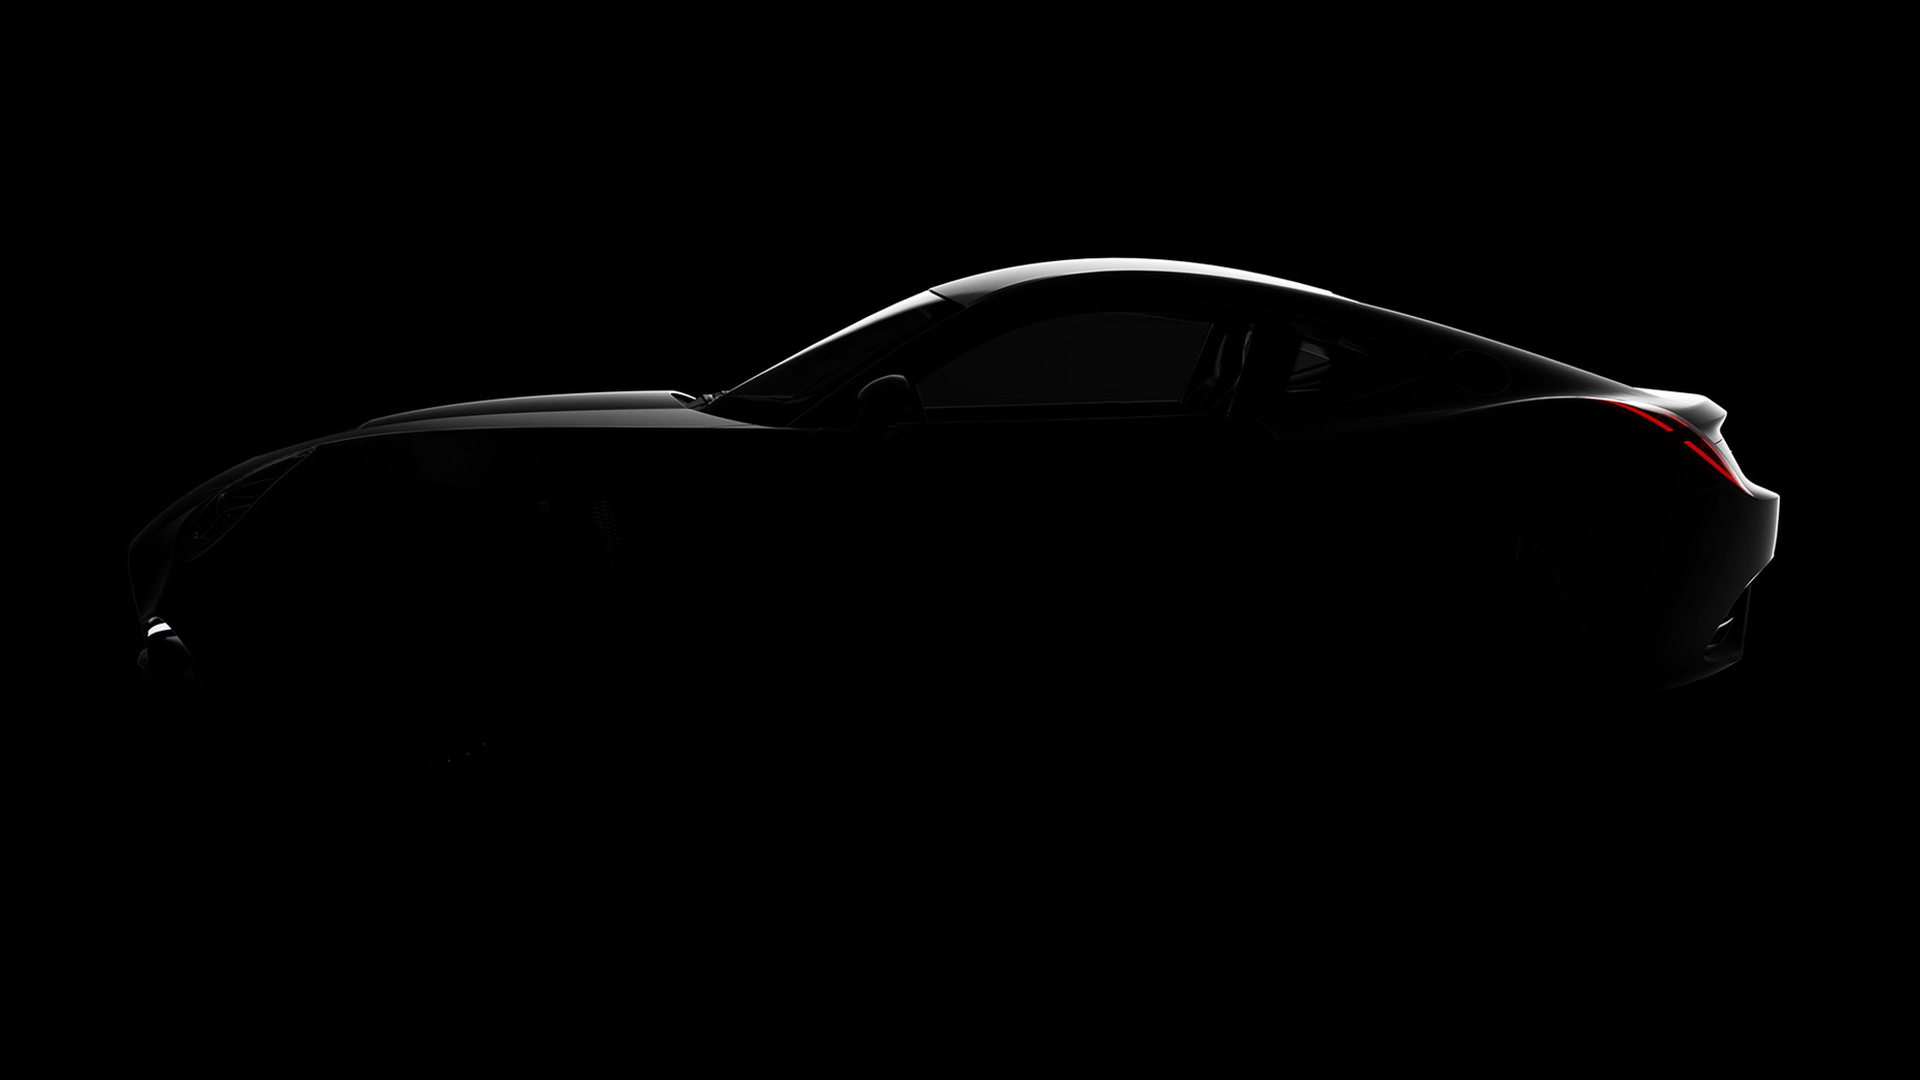 Teaser for Puritalia Berlinetta debuting at 2019 Geneva auto show